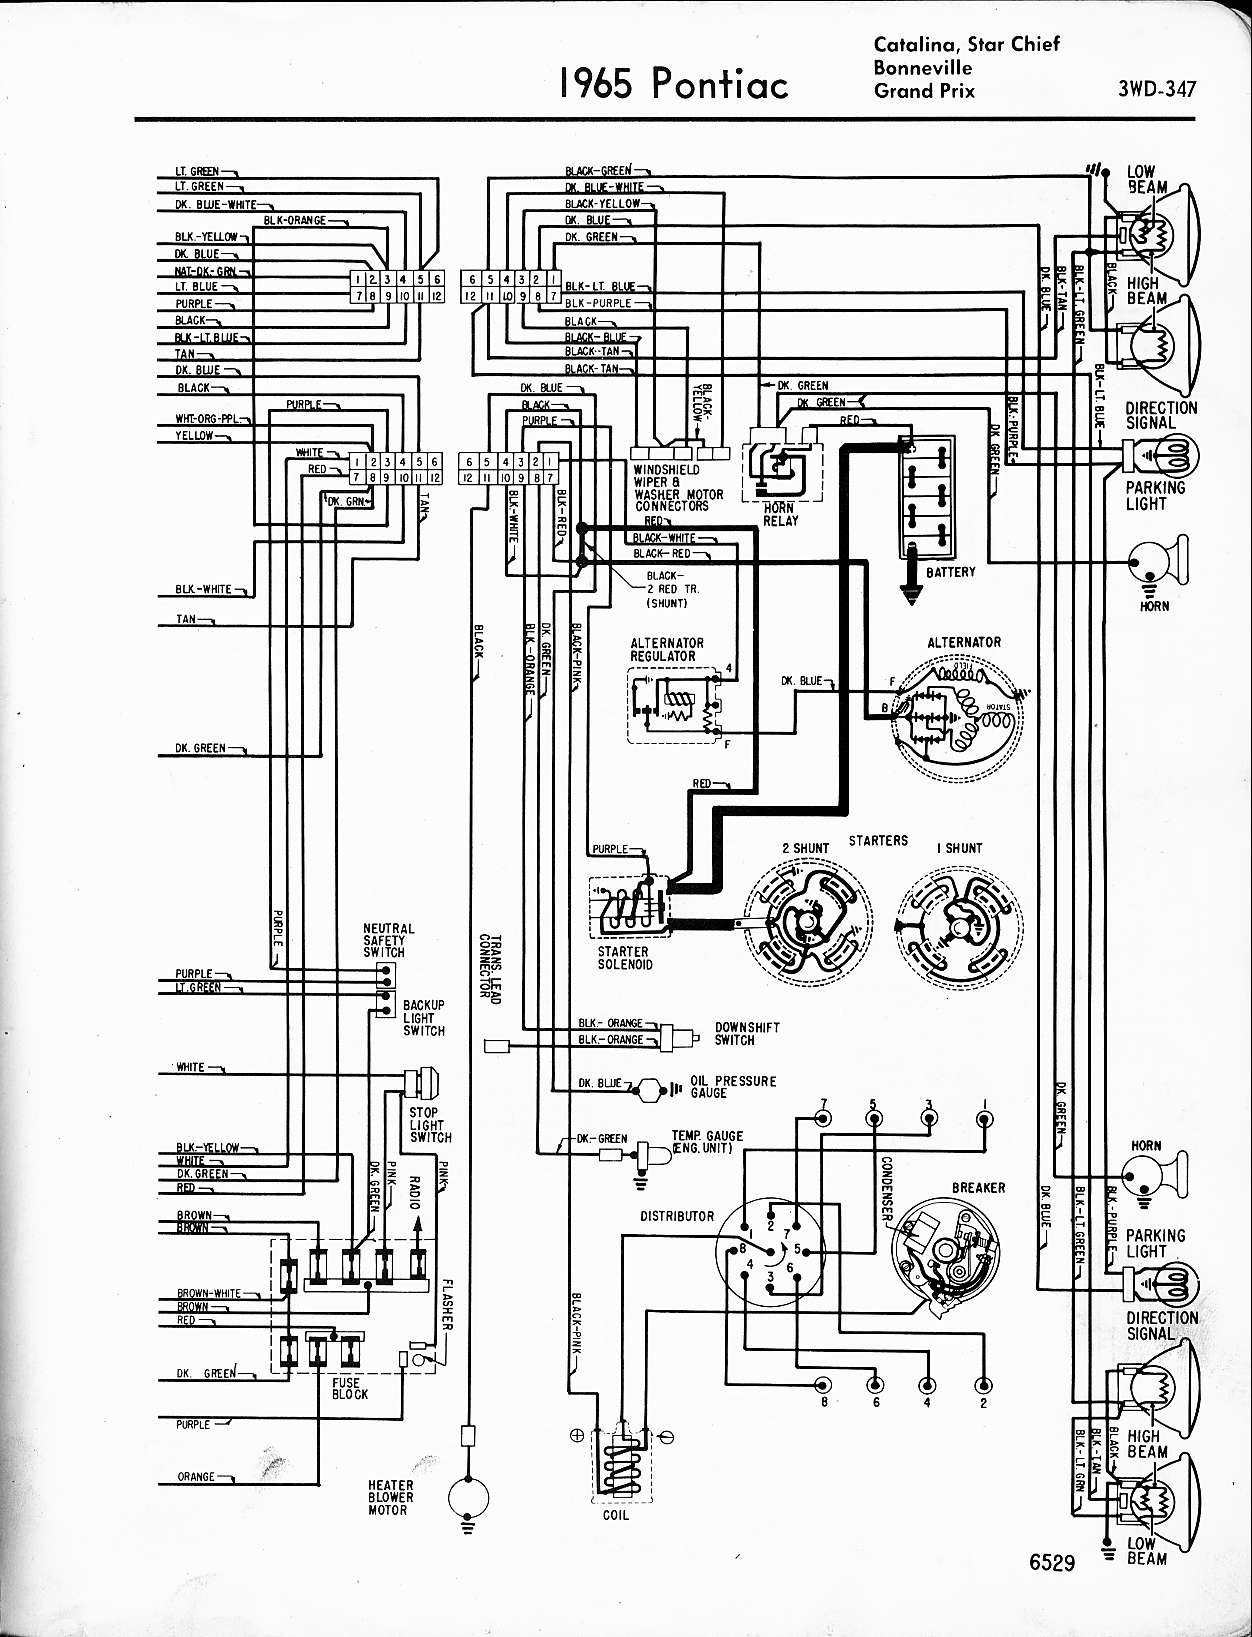 1970 Gto Wiring Diagram Schematic Name Mustang Starter Wallace Racing Diagrams 1965 Catalina Star Chief Bonneville